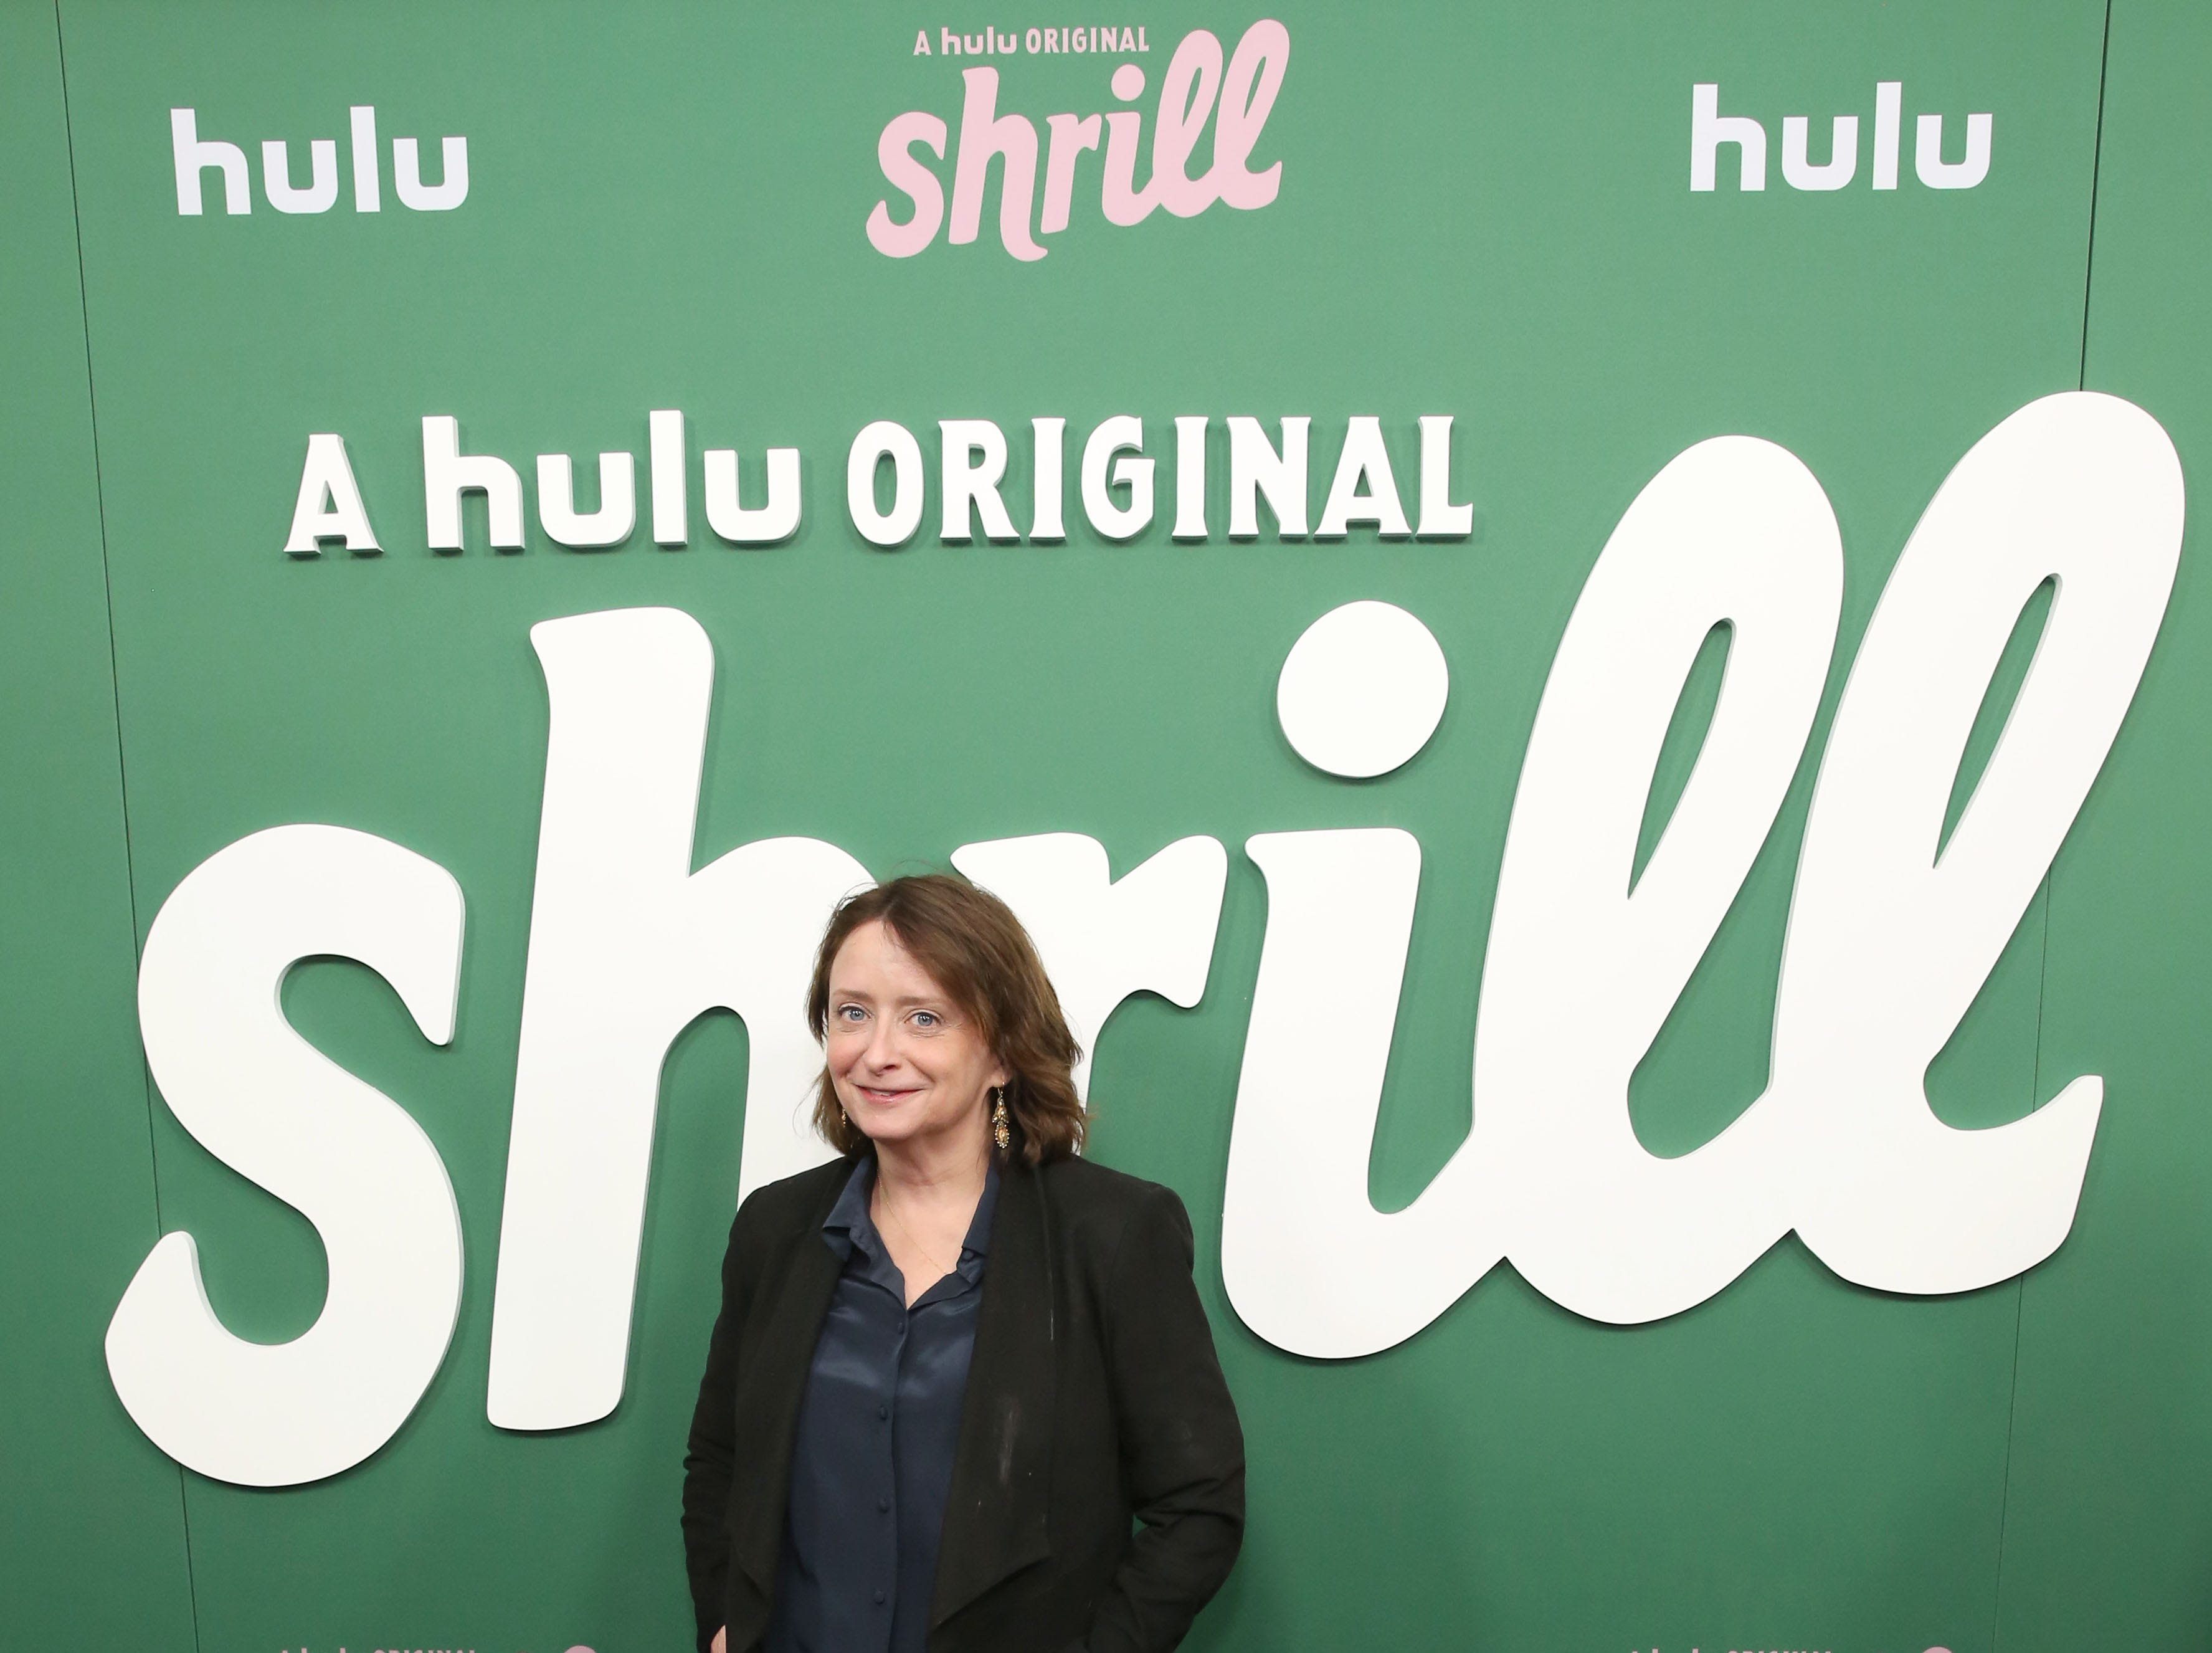 "NEW YORK, NEW YORK - MARCH 13: Rachel Dratch attends Hulu's ""Shrill"" New York Premiere at Film Society of Lincoln Center - Walter Reade Theater on March 13, 2019 in New York City. (Photo by Monica Schipper/Getty Images for Hulu) ORG XMIT: 775312077 ORIG FILE ID: 1135631627"